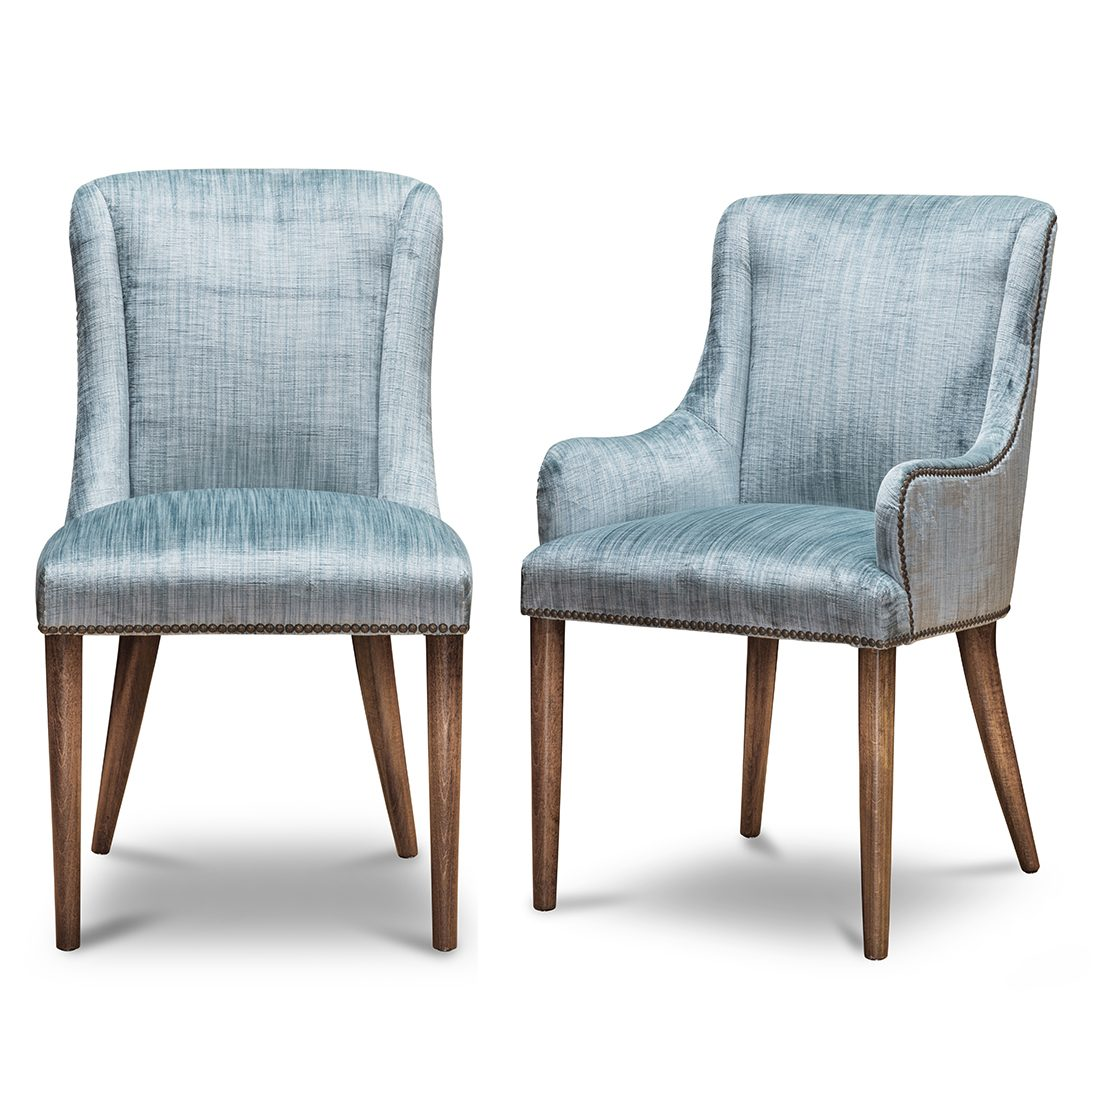 Calypso dining chairs in Como - Teal - Beaumont & Fletcher